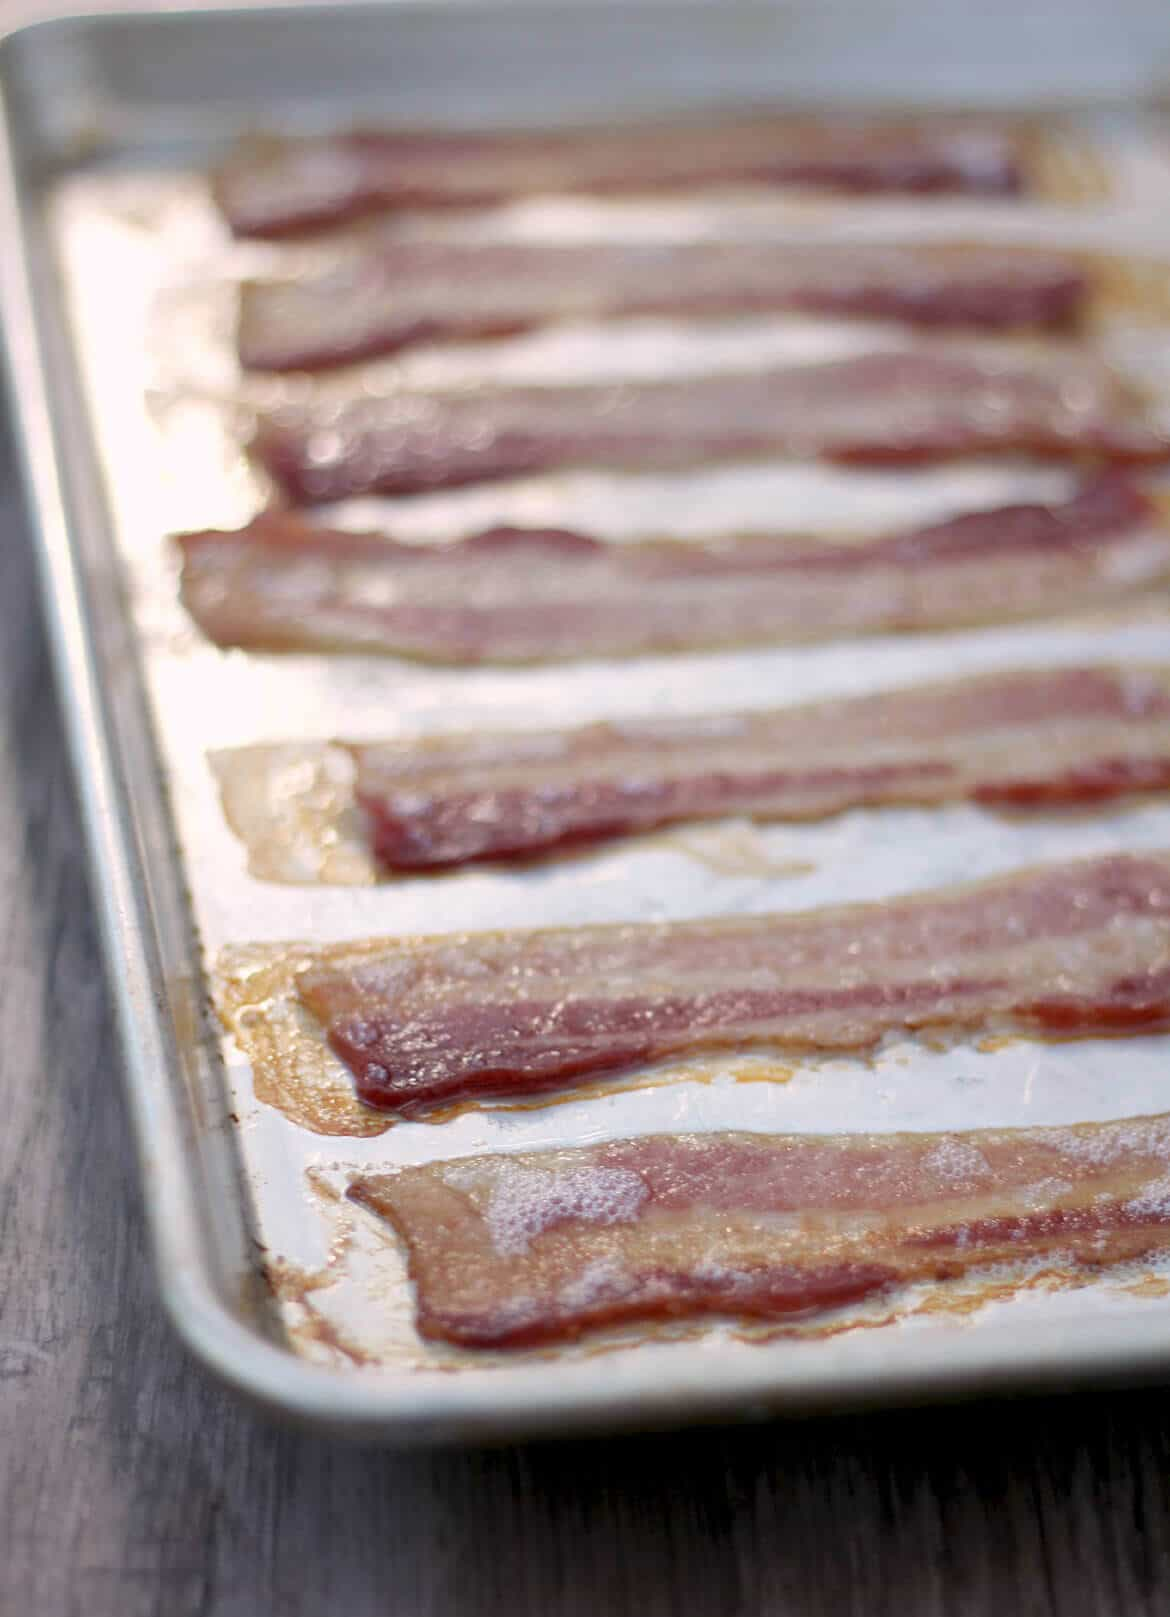 Oven cooked bacon is crisp and perfectly browned if done correctly! Forget the mess and standing over the skillet--oven cooking is the way to go!